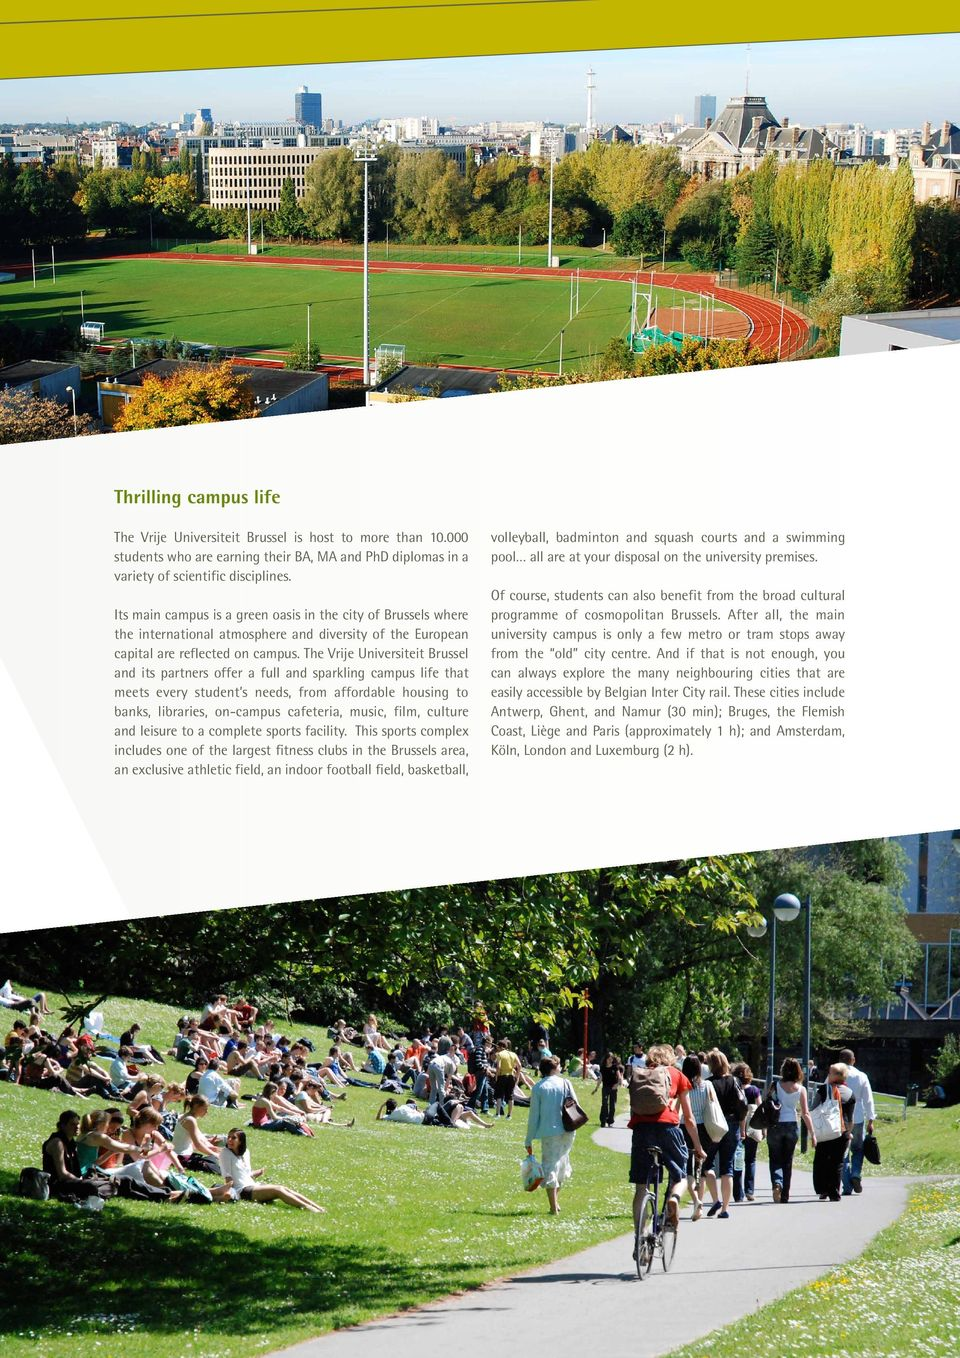 The Vrije Universiteit Brussel and its partners offer a full and sparkling campus life that meets every student s needs, from affordable housing to banks, libraries, on-campus cafeteria, music, film,